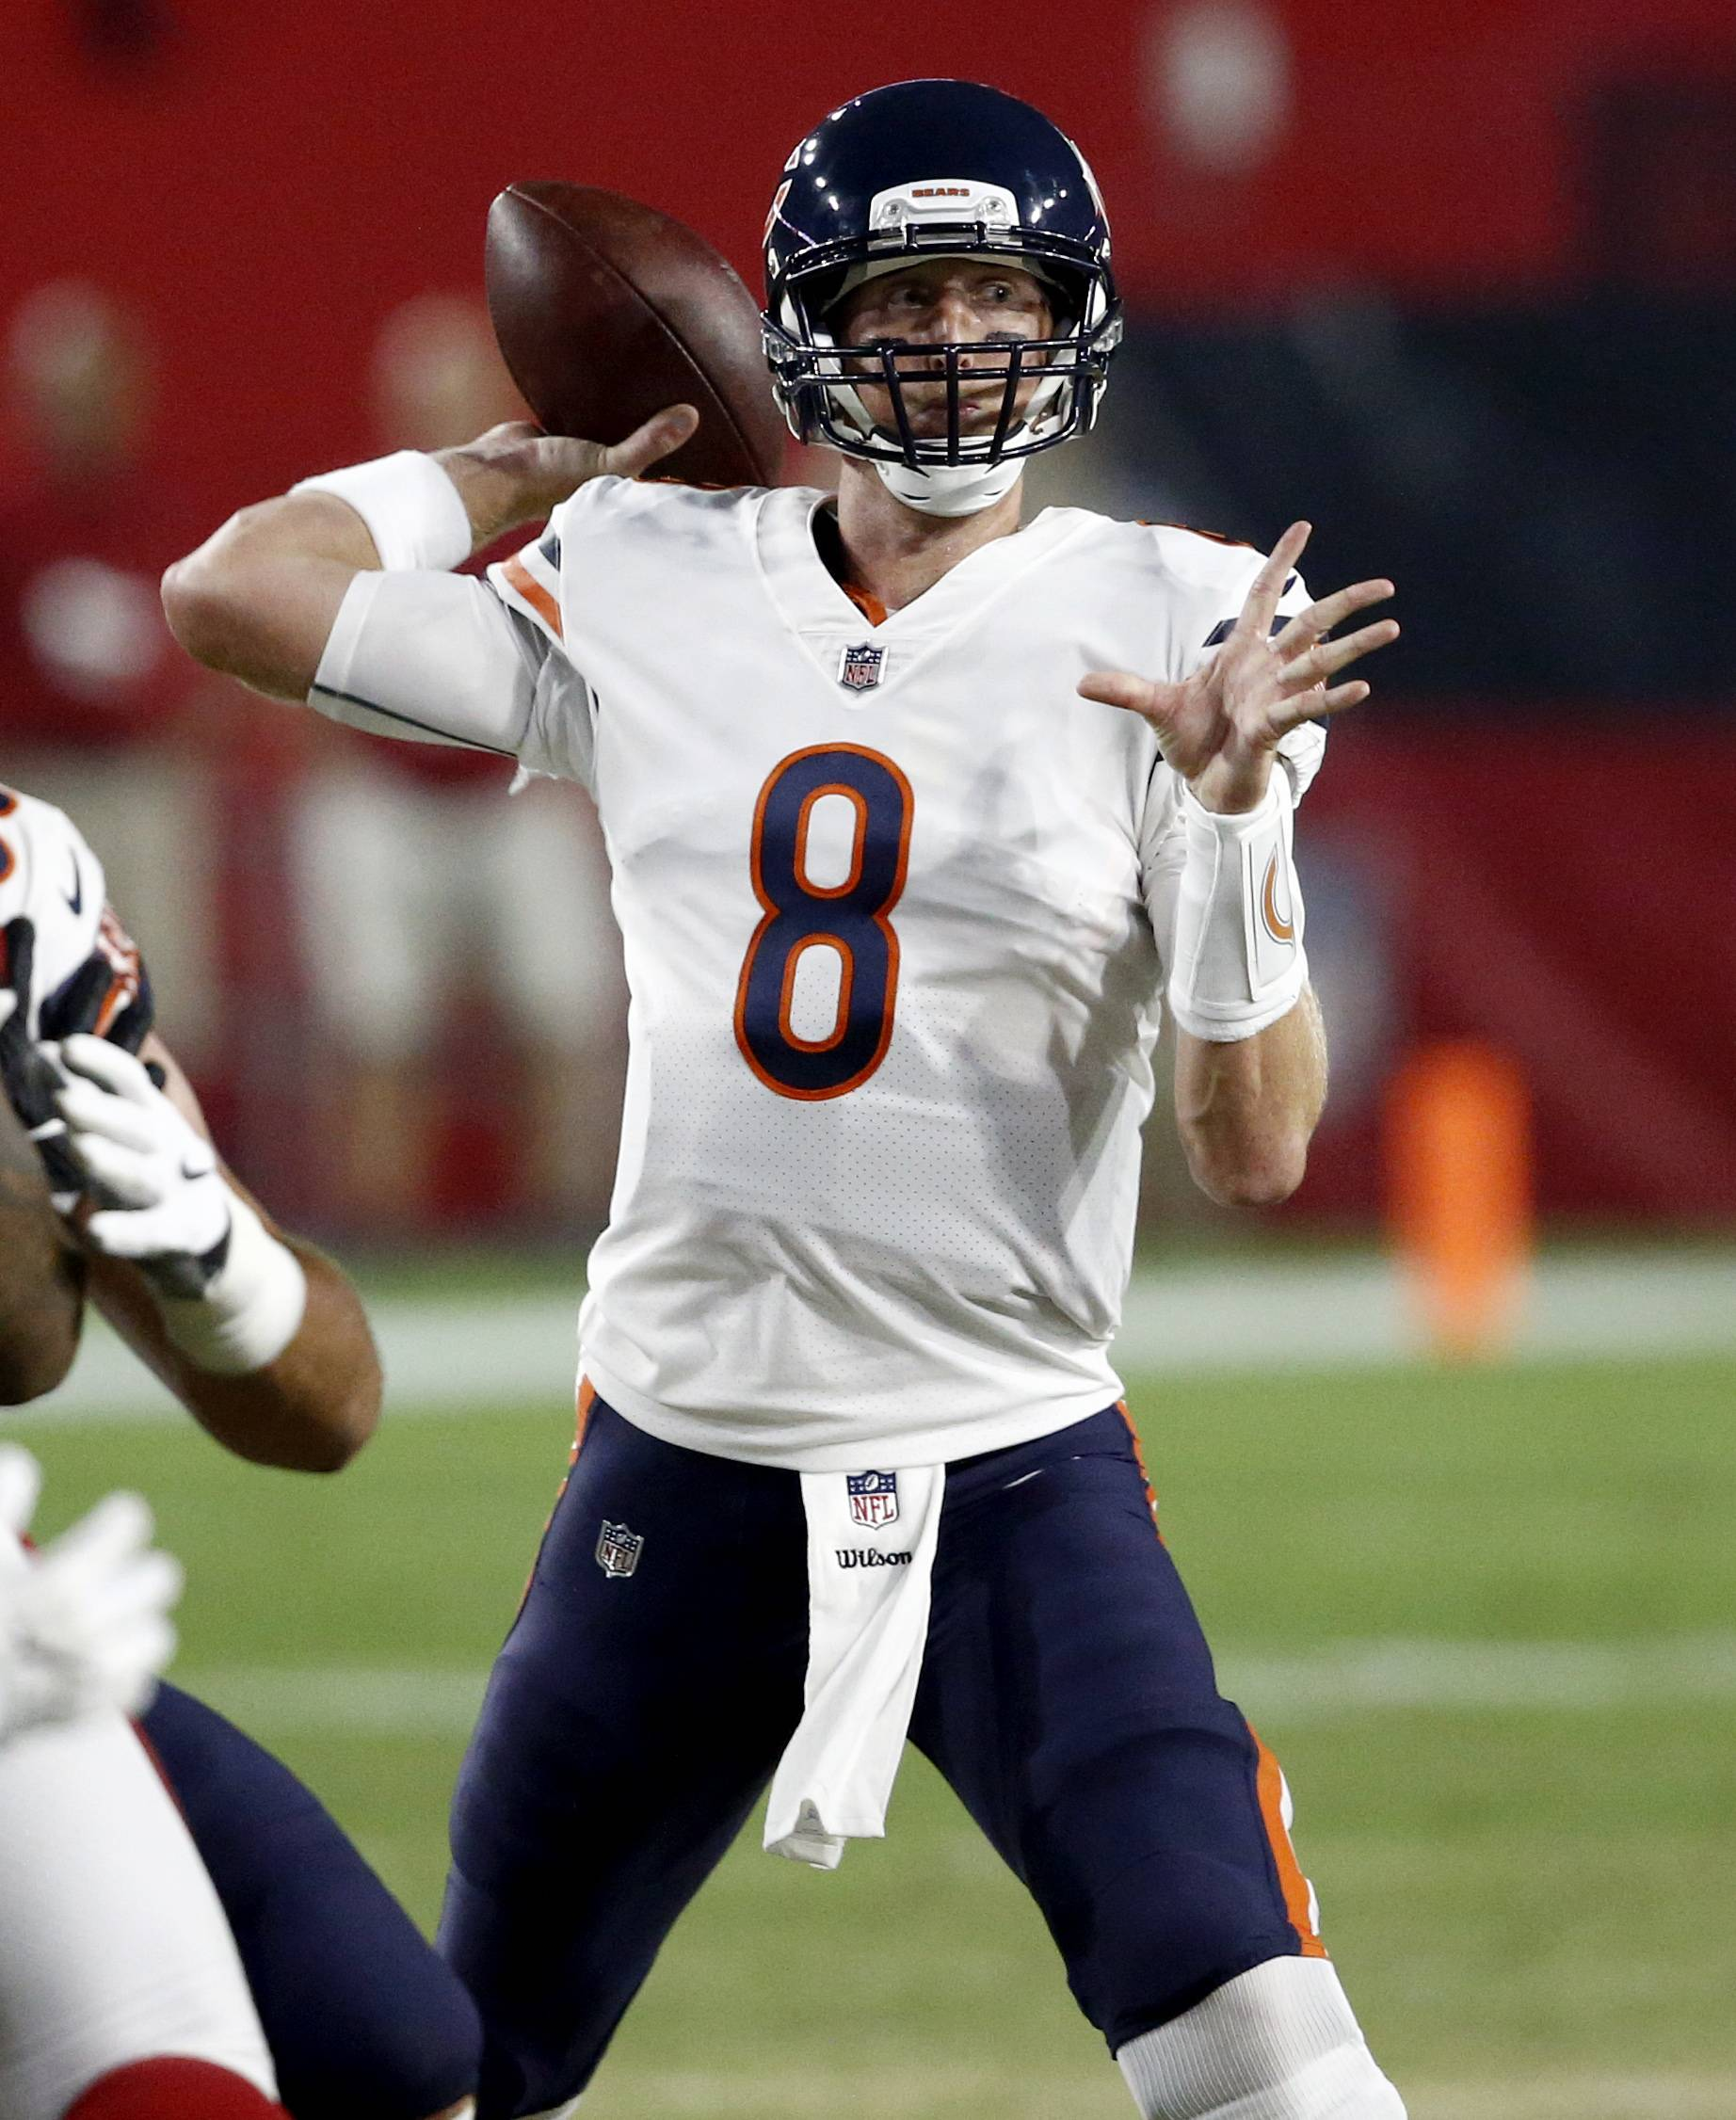 Chicago Bears quarterback Mike Glennon (8) throws against the Arizona Cardinals during the first half of a preseason NFL football game, Saturday, Aug. 19, 2017, in Glendale, Ariz. (AP Photo/Ross D. Franklin)